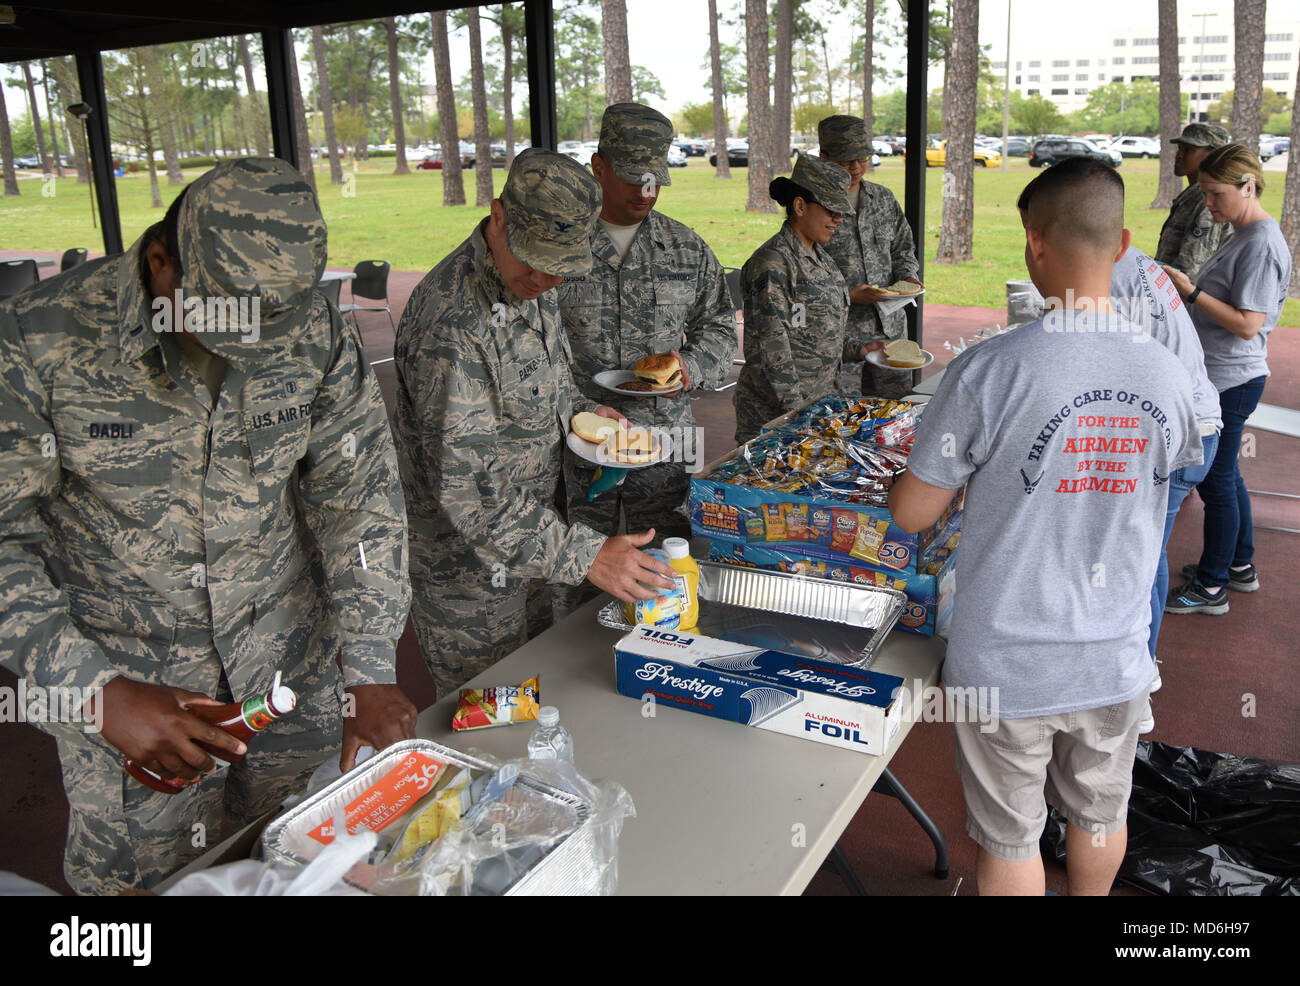 Keesler personnel get food during the Air Force Assistance Fund burger burn at the Crotwell Track March 26, 2018, on Keesler Air Force Base, Mississippi. The AFAF is an annual effort to raise funds for the charitable affiliates that provide support to our Air Force family in need. (U.S. Air Force photo by Kemberly Groue) - Stock Image